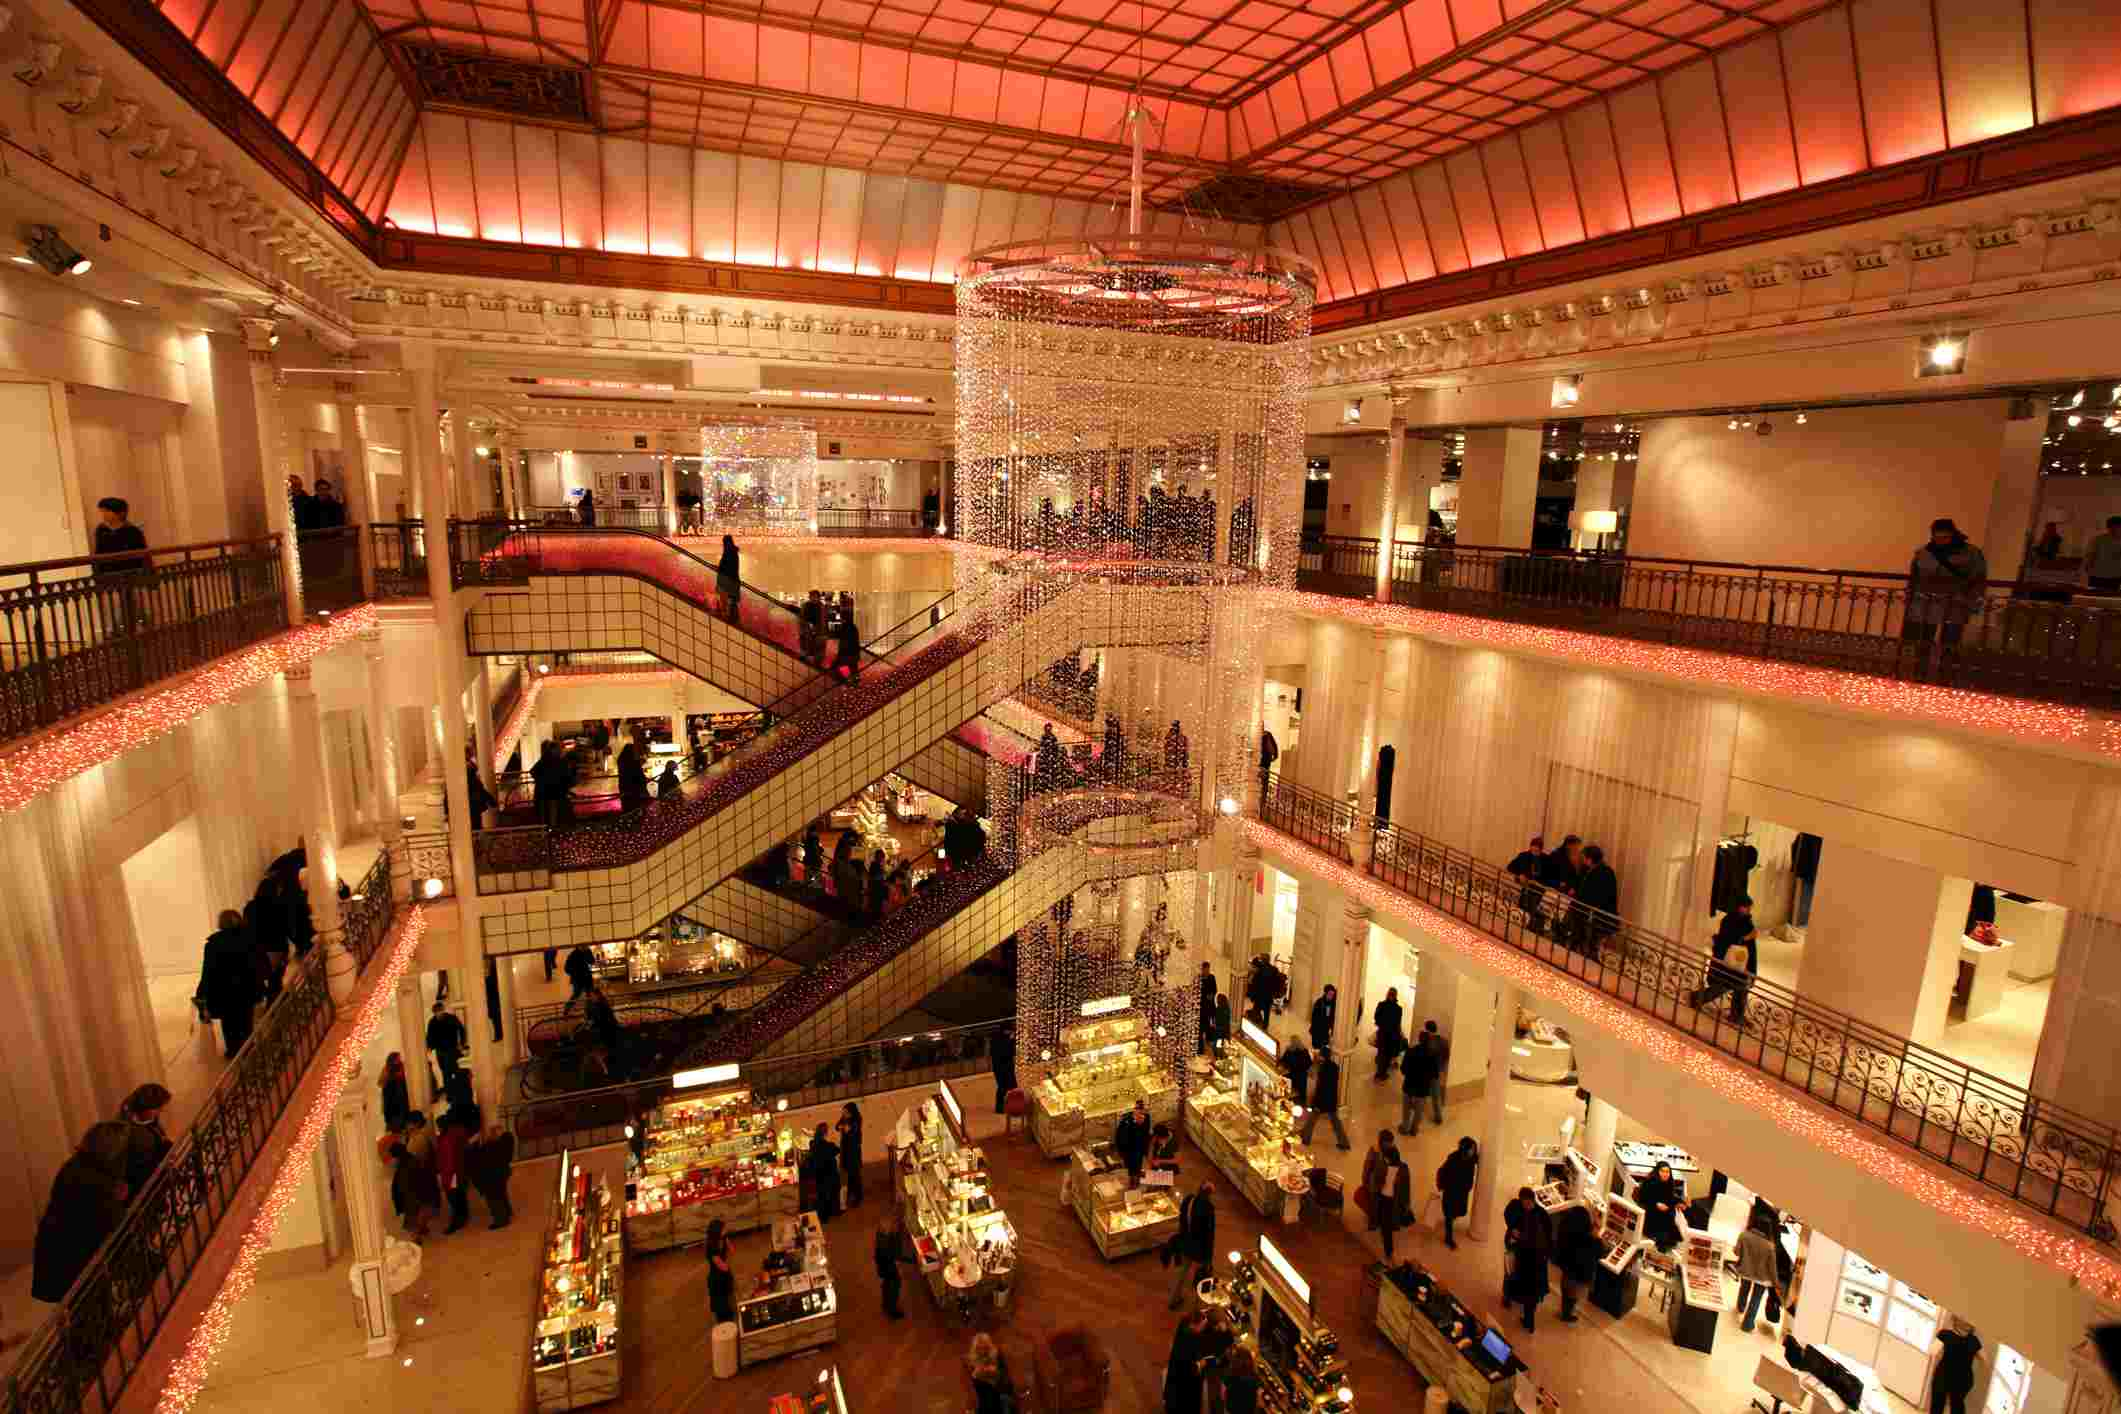 Interior of Le Bon Marche department store with large chandelier